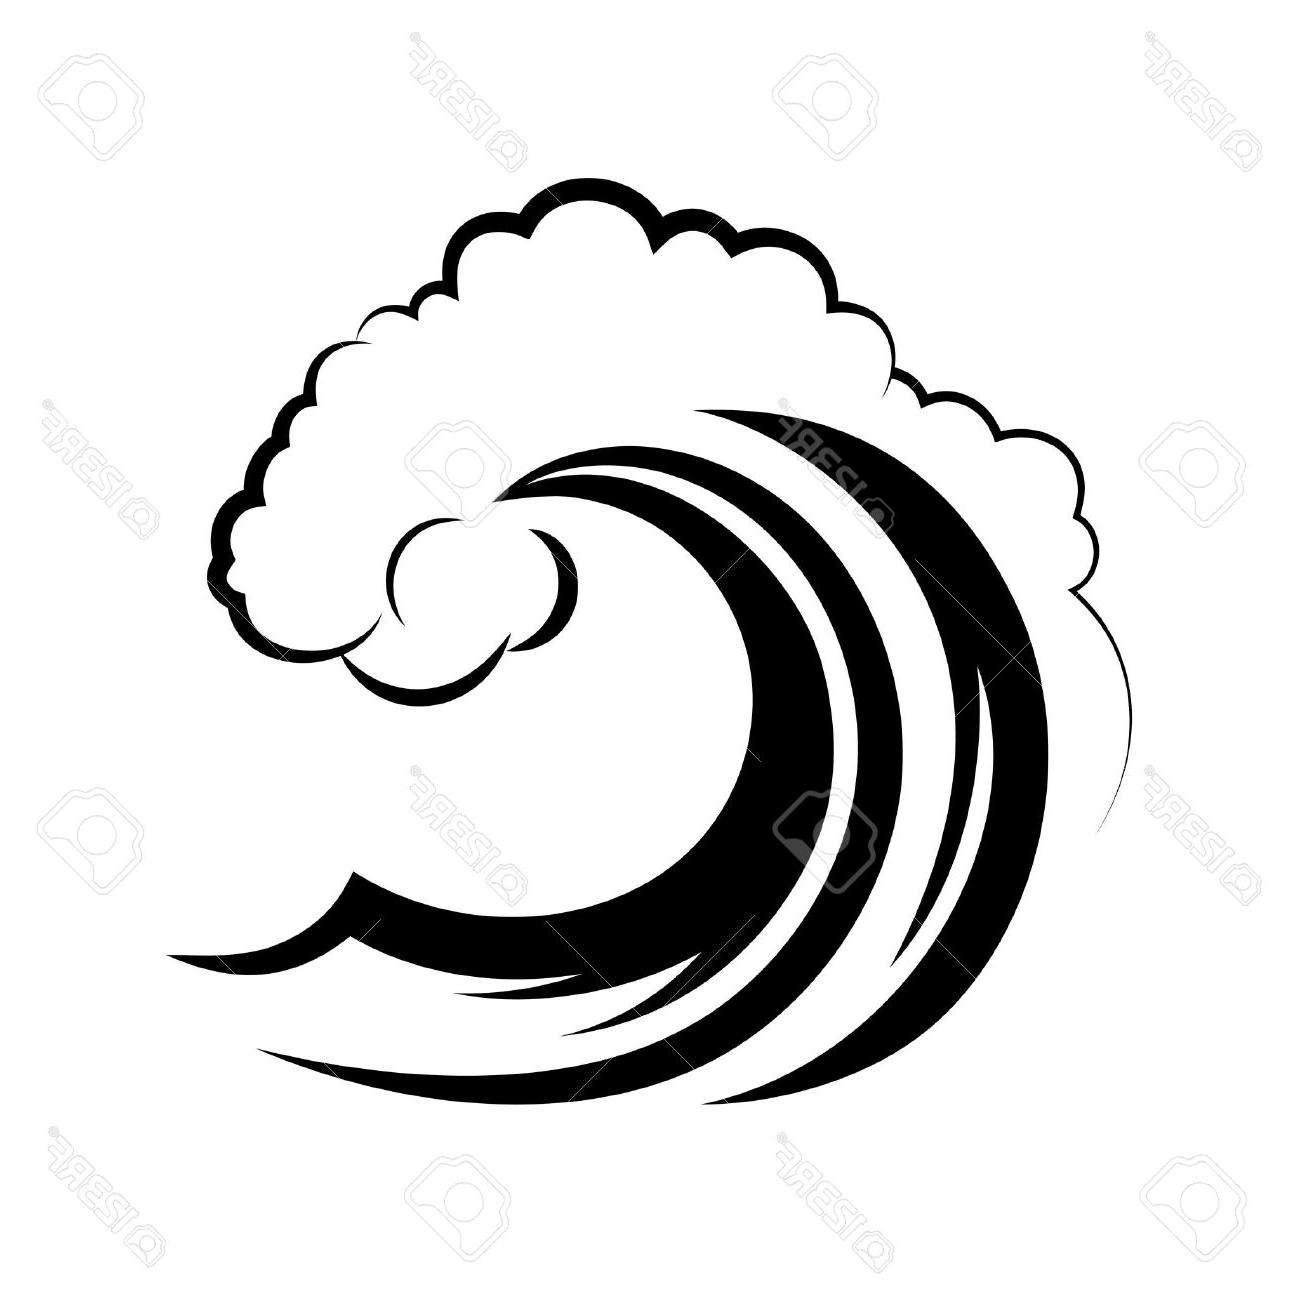 Wave Clipart Black And White.